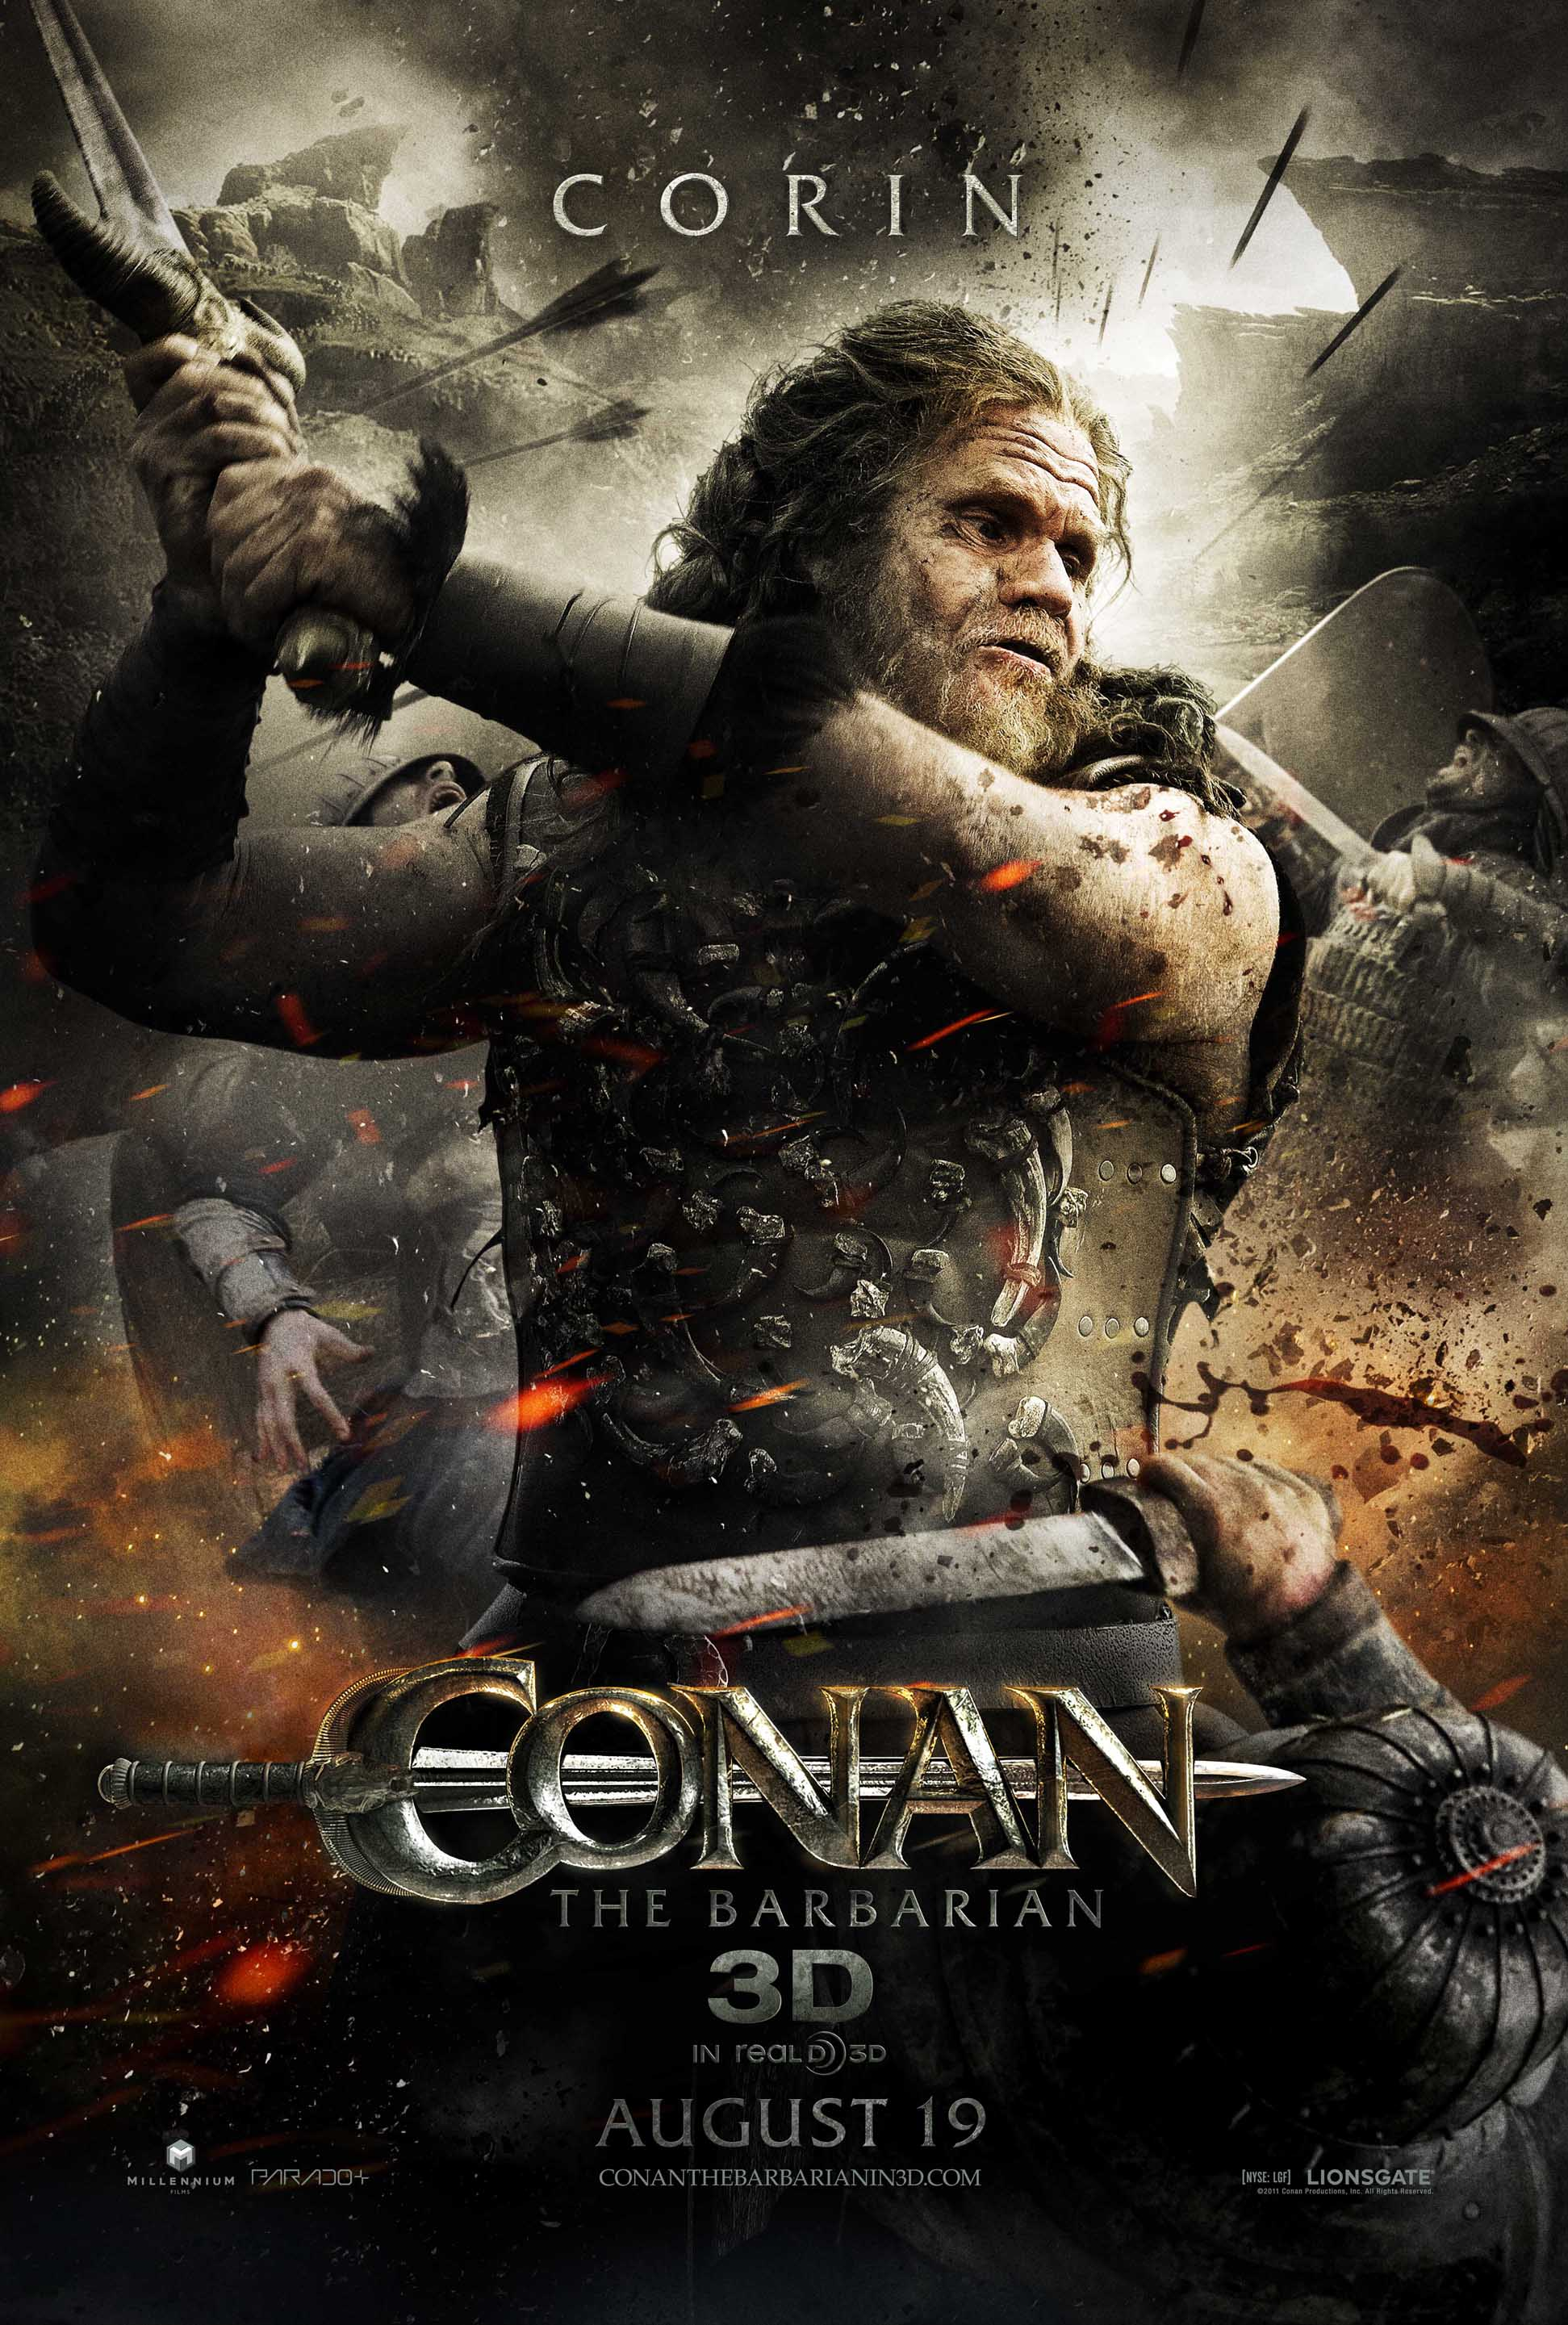 Conan the Barbarian Poster - Ron Perlman - HeyUGuys : jungle book movie poster : Movie Poster